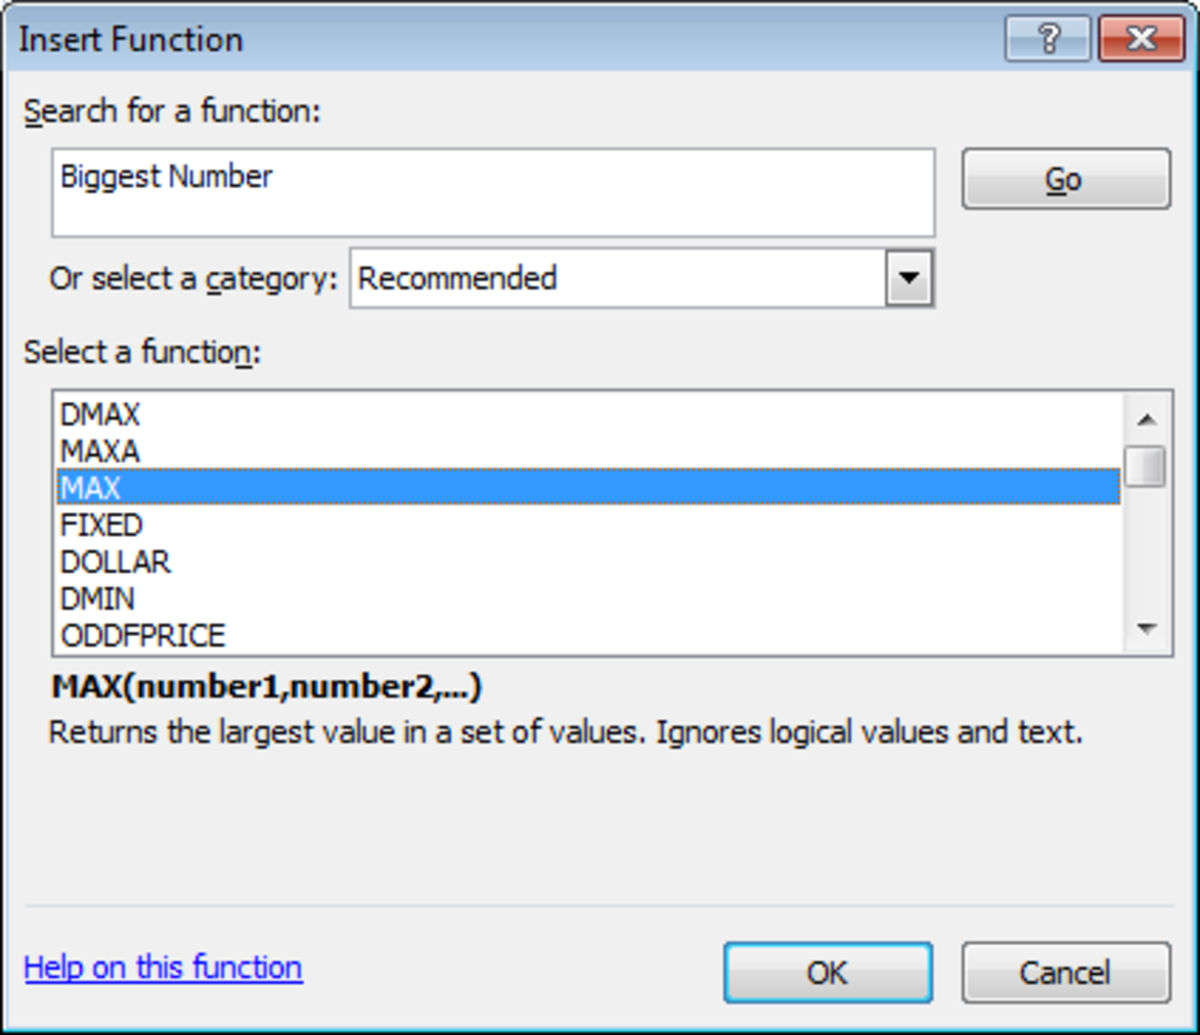 The Insert Function tool in Excel 2007 or Excel 2010 has enabled us to quickly and easily find the function that we need .